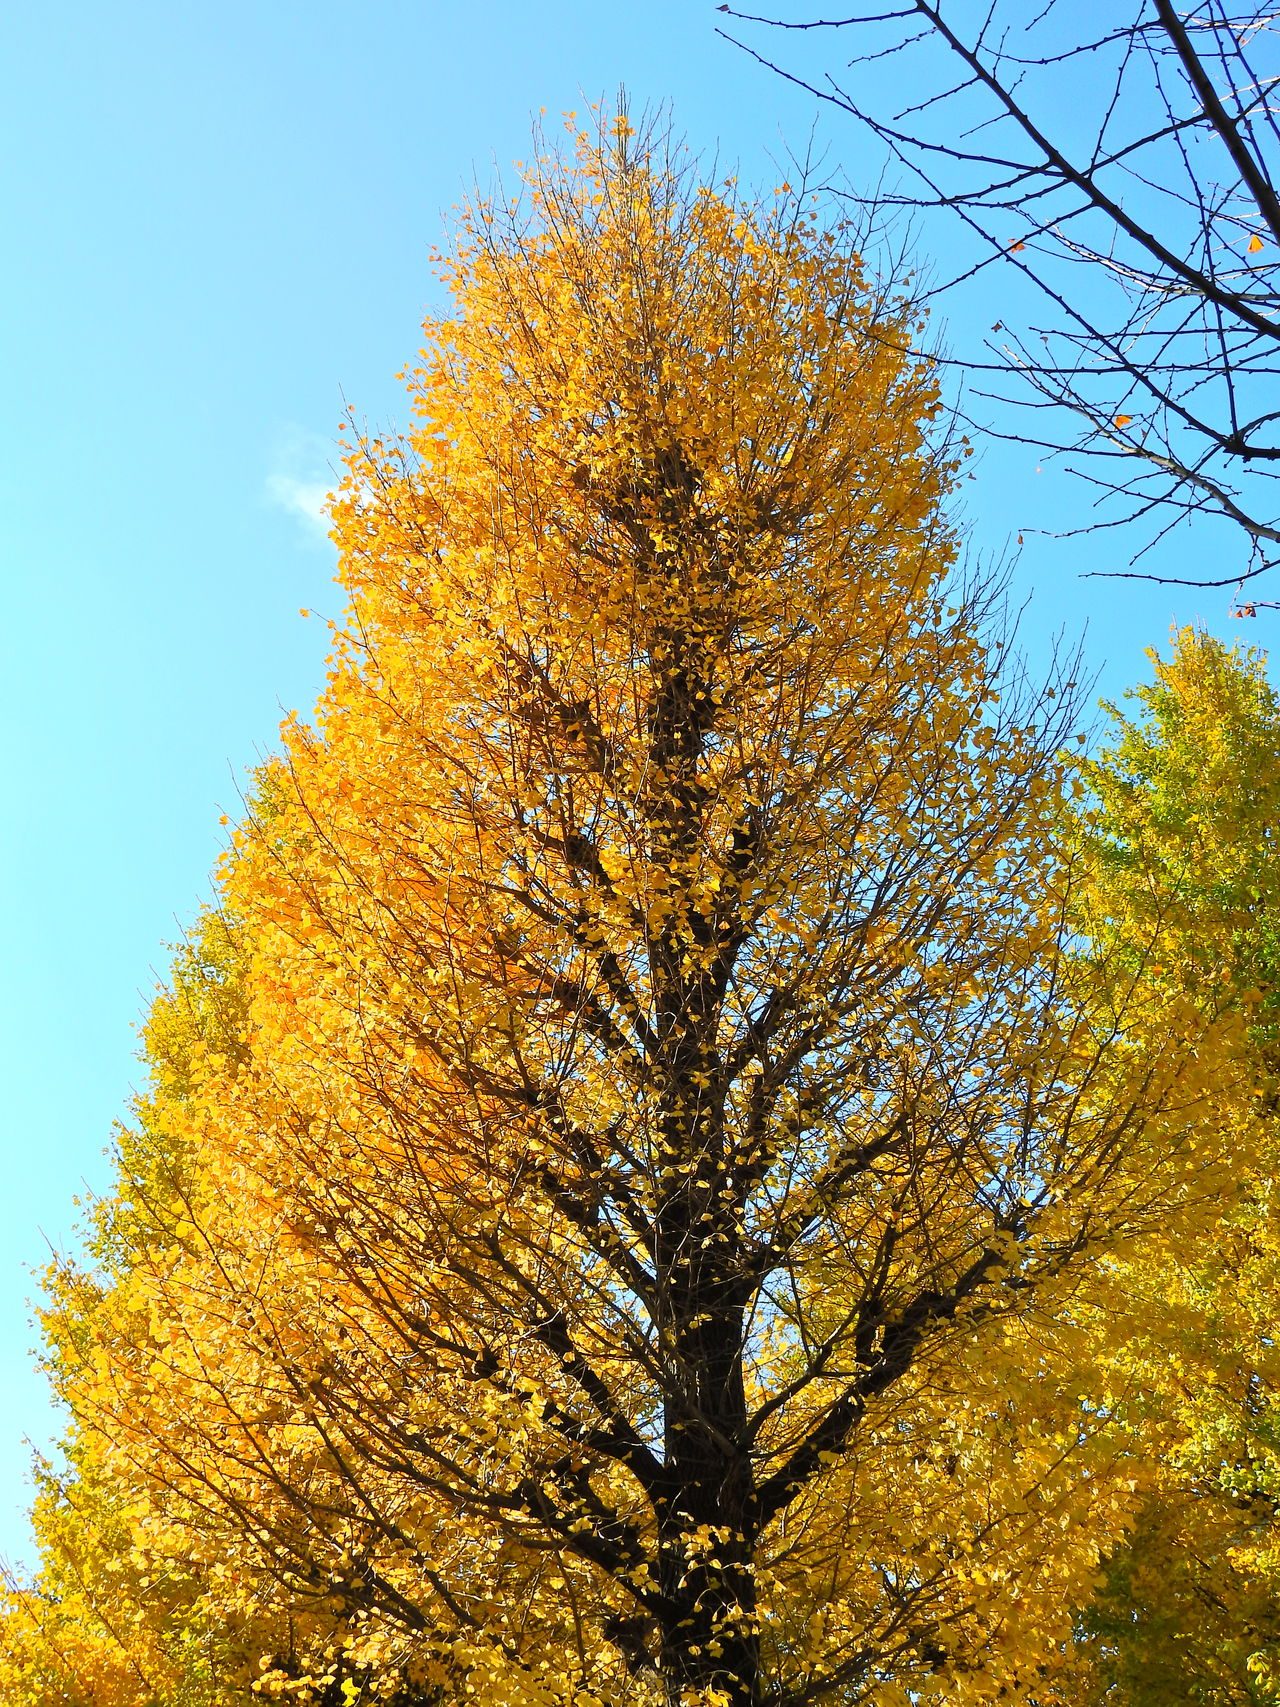 Ginkgo trees Autumn Beauty In Nature Close-up Day Ginkgo Trees Growth Low Angle View Nature No People Outdoors Sky Tree